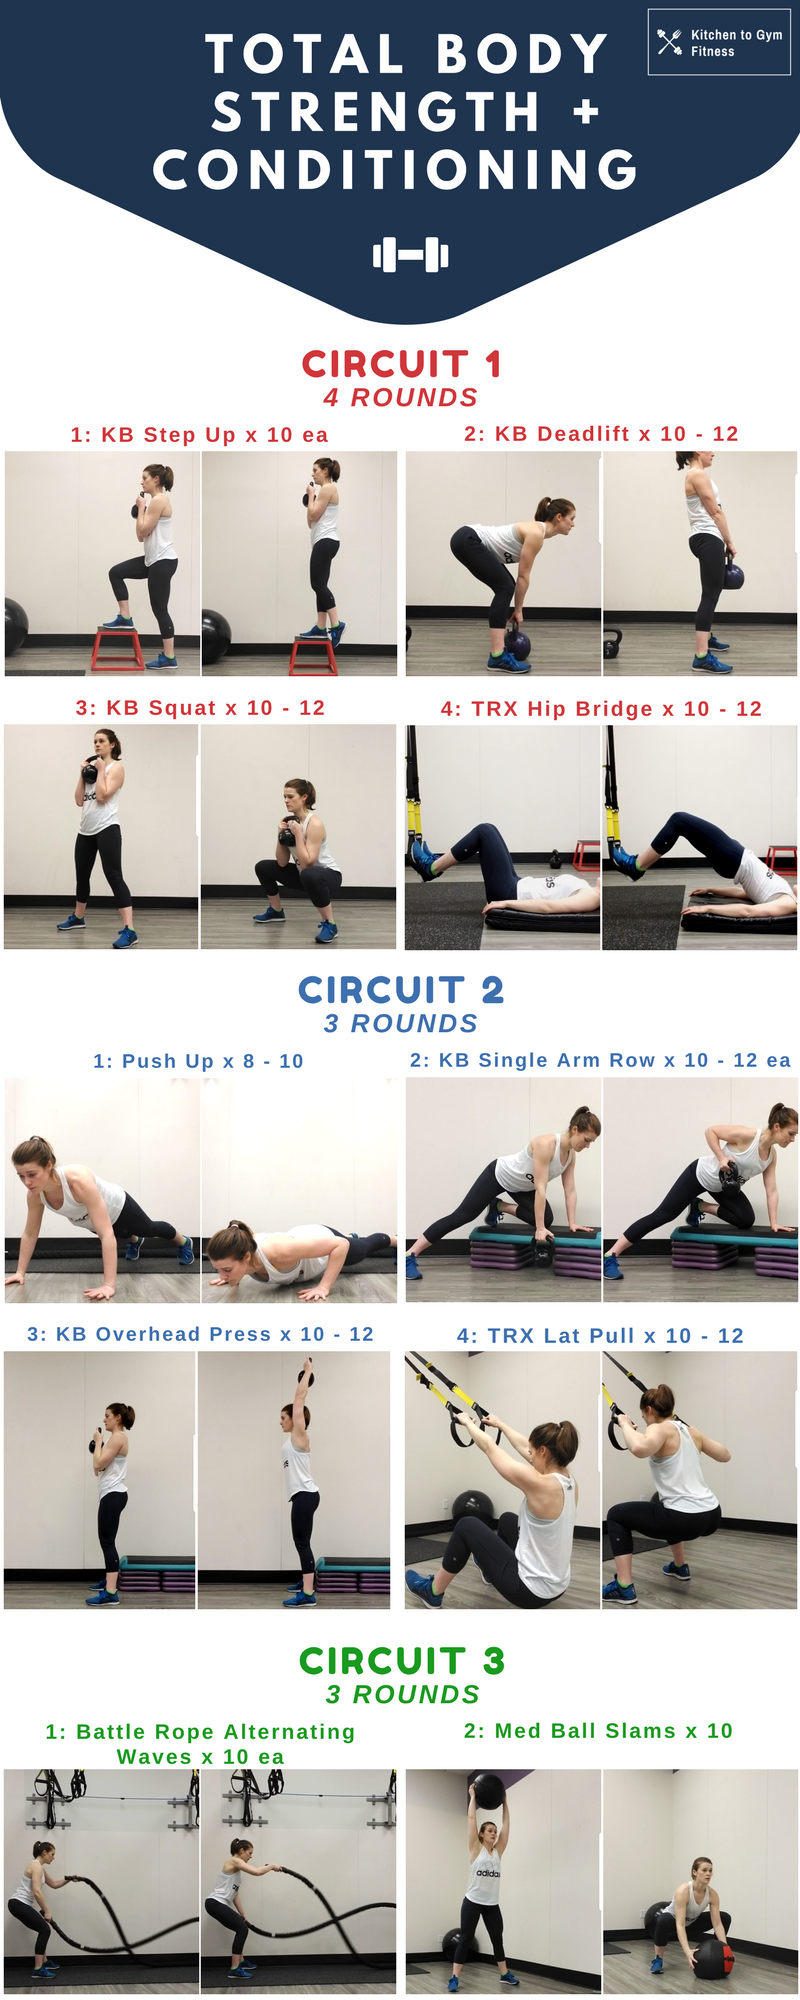 Total Body Studio Workout Kitchen To Gym Fitness Workouts And Tagged Circuit Full Remember Warm Up Before You Exercise Cool Down After If Any Causes Pain Discontinue The